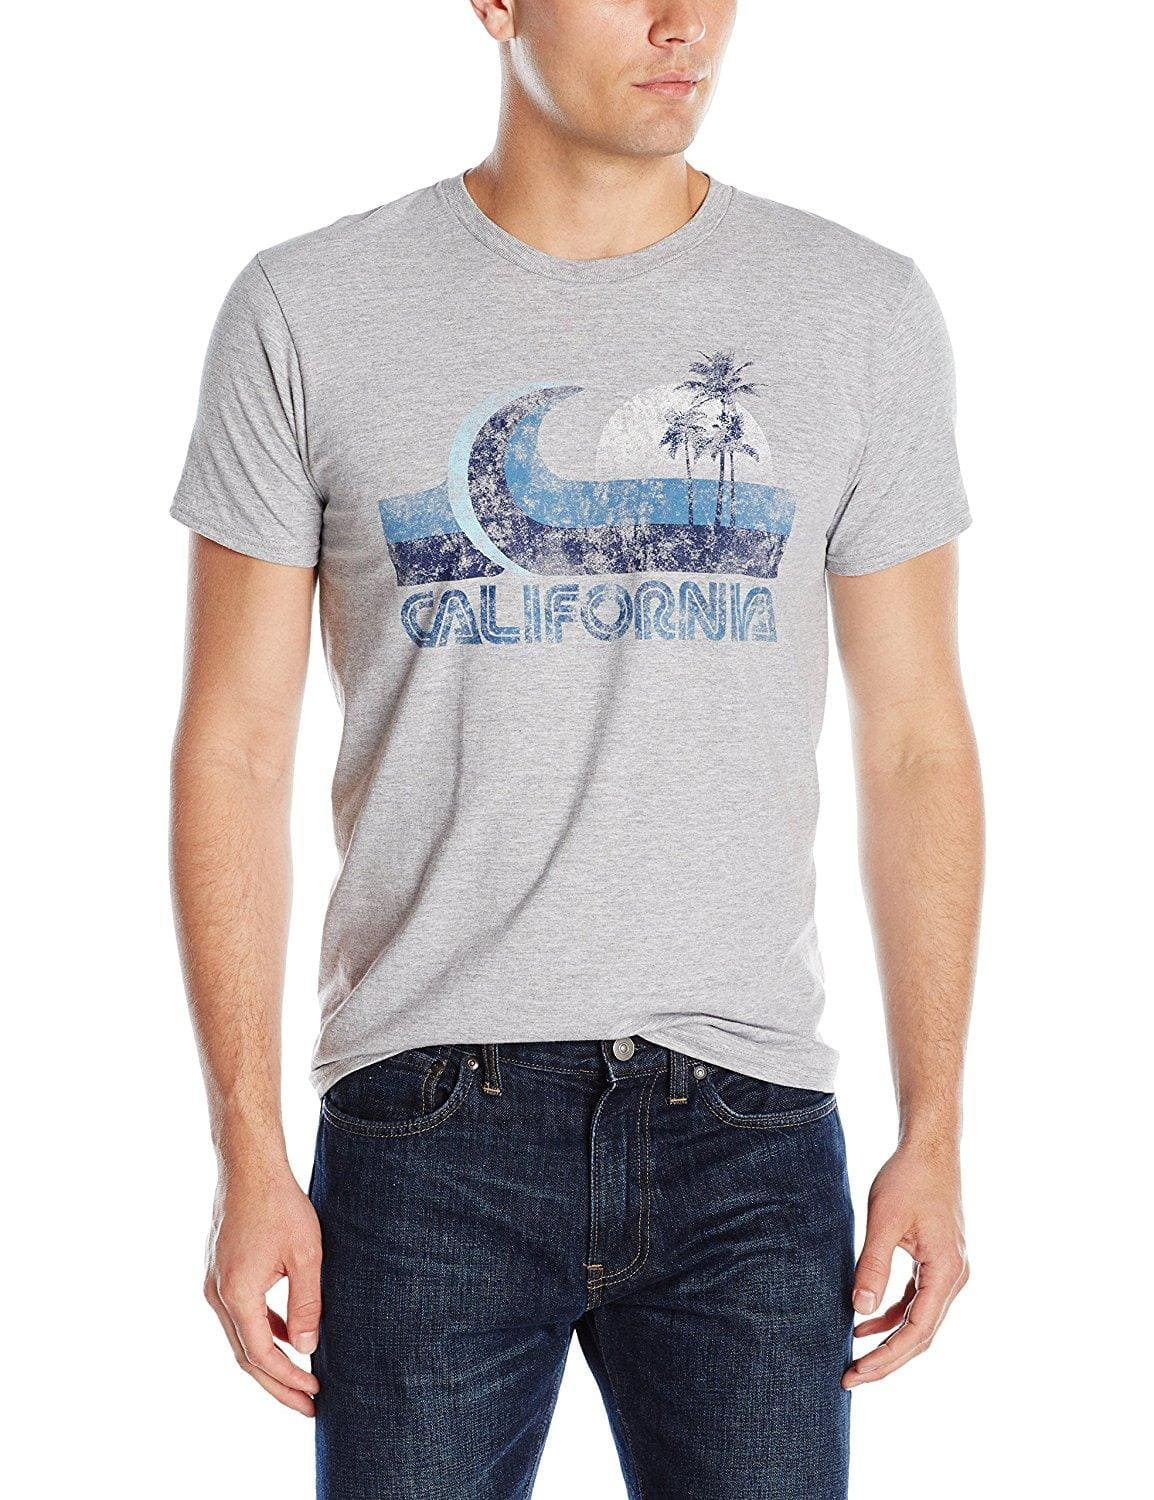 f5c9d79a Add-on Item: Hanes Men's Graphic Vintage Cali Collection T-Shirt ...